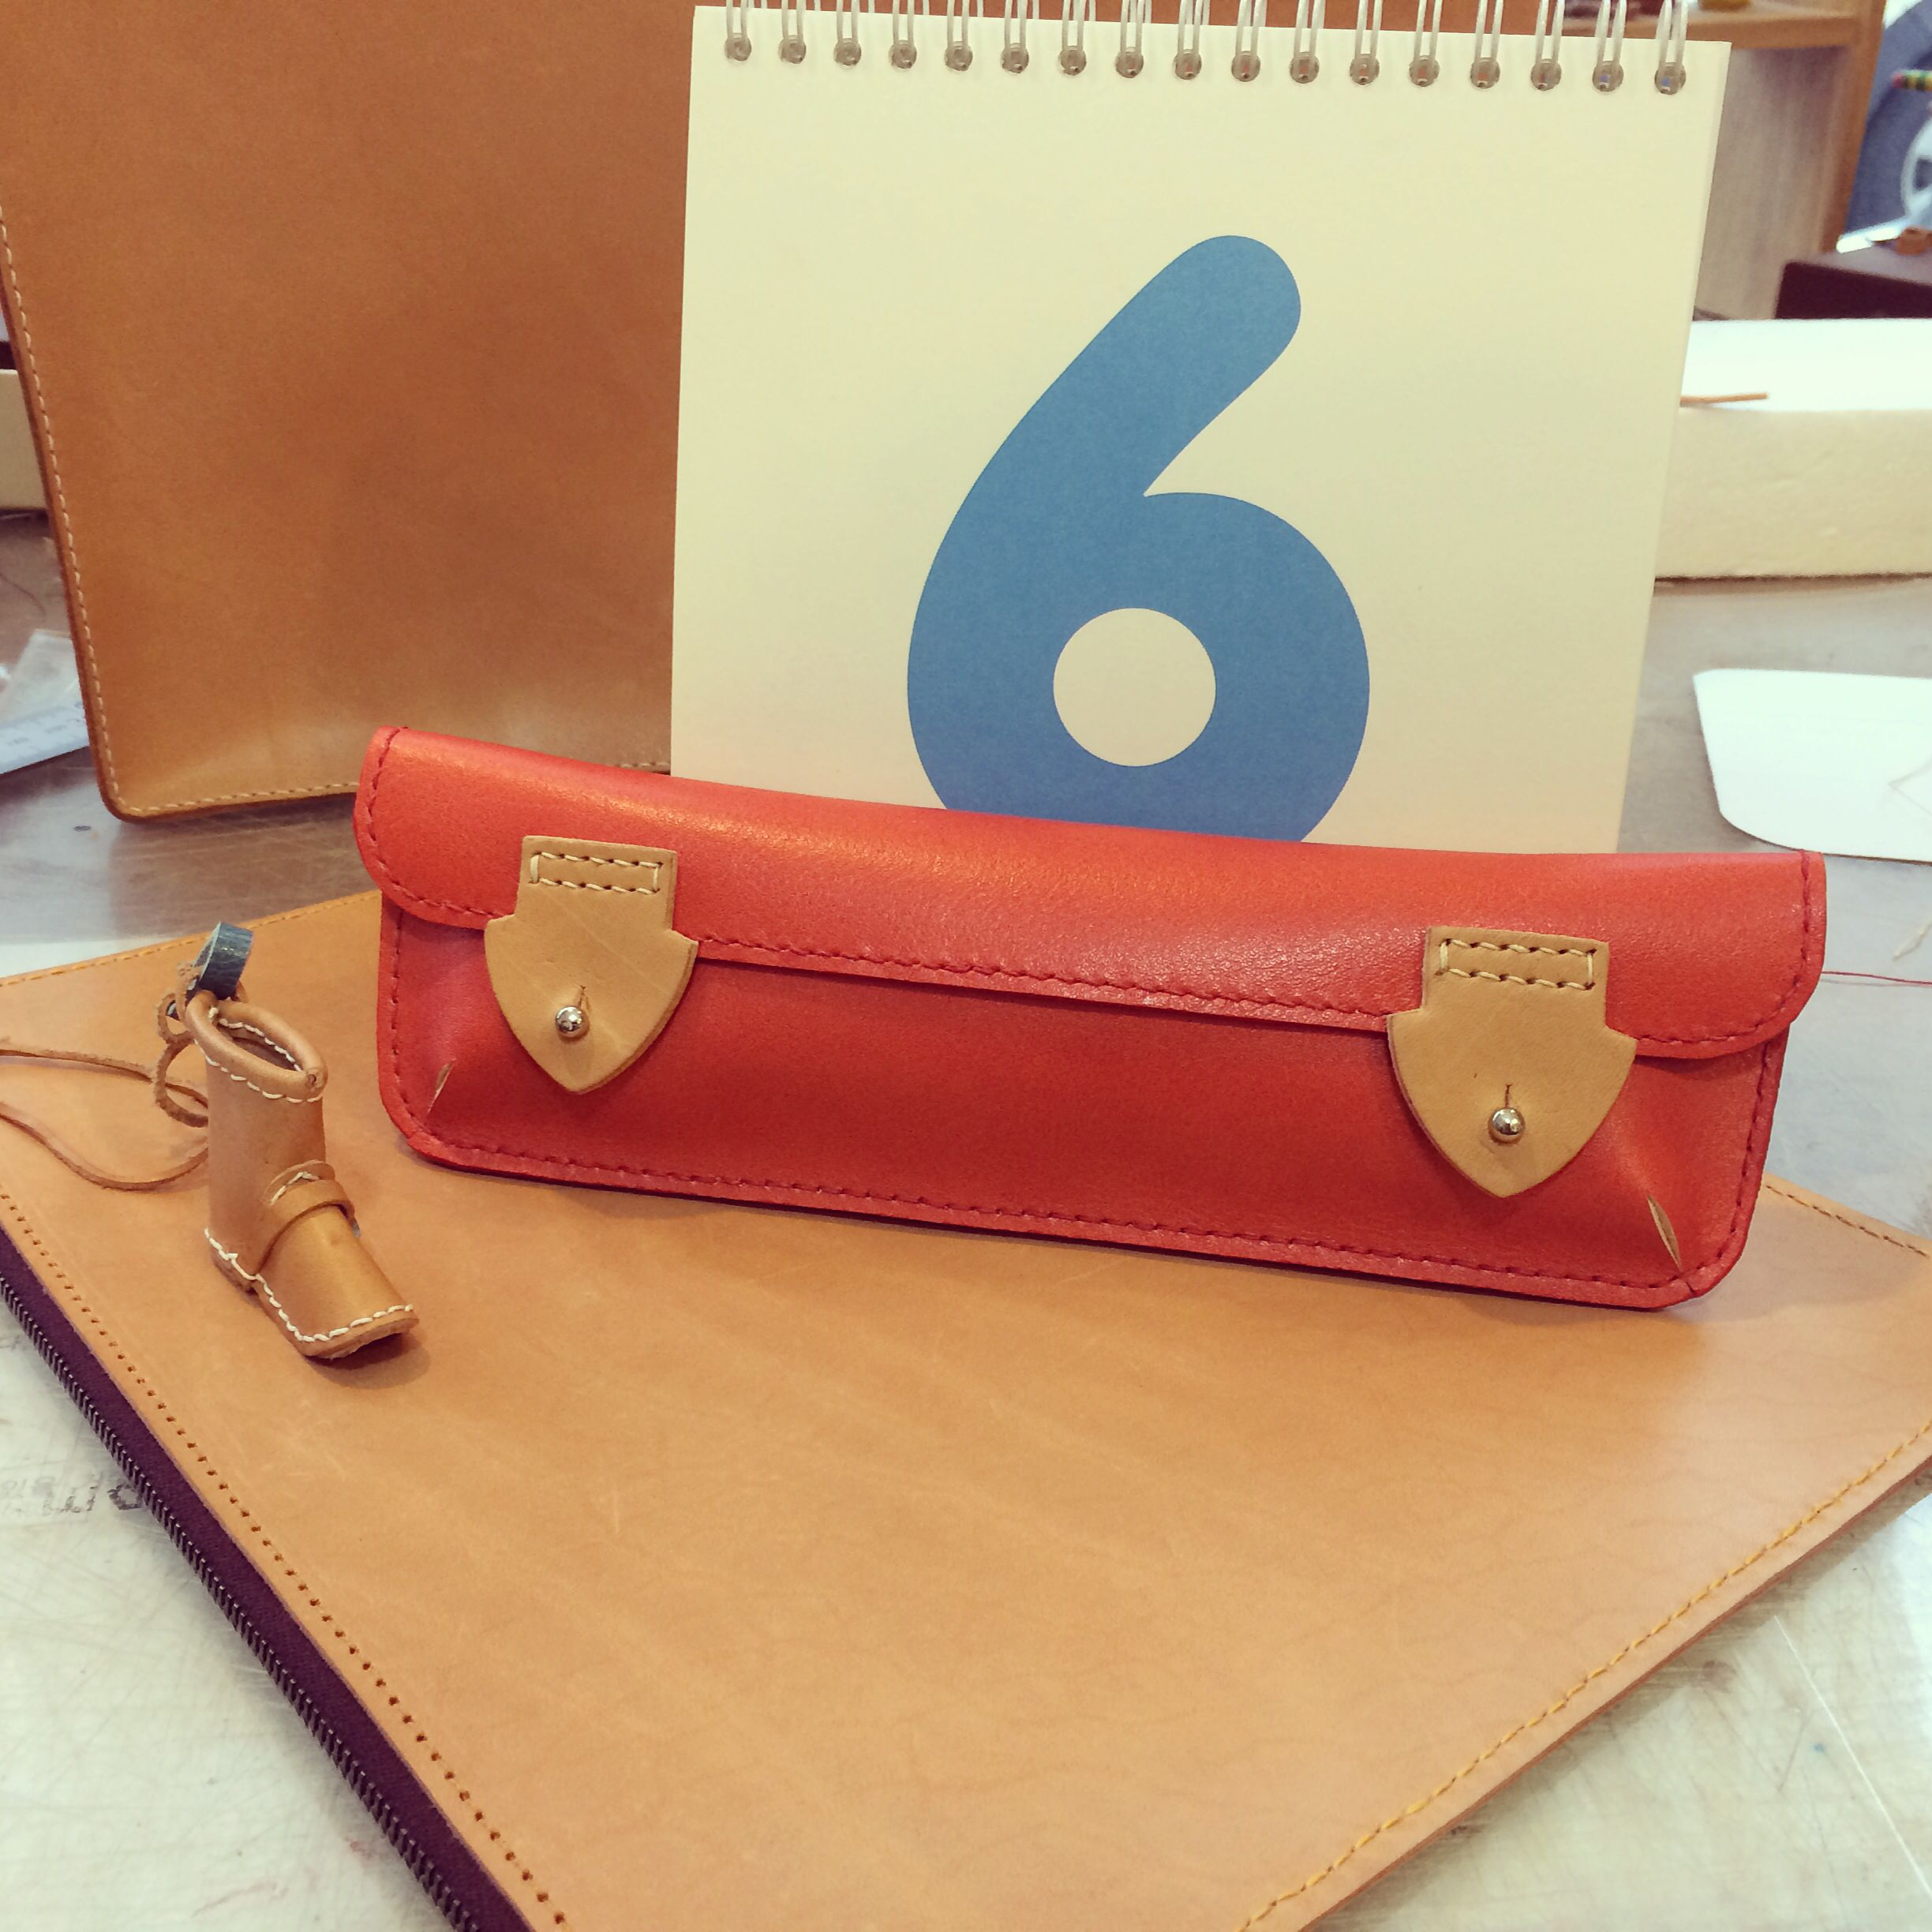 wondermade atelier ~ leather , pencil case , pouch , handemade , saddle stitch, lin cable, ltaly leather